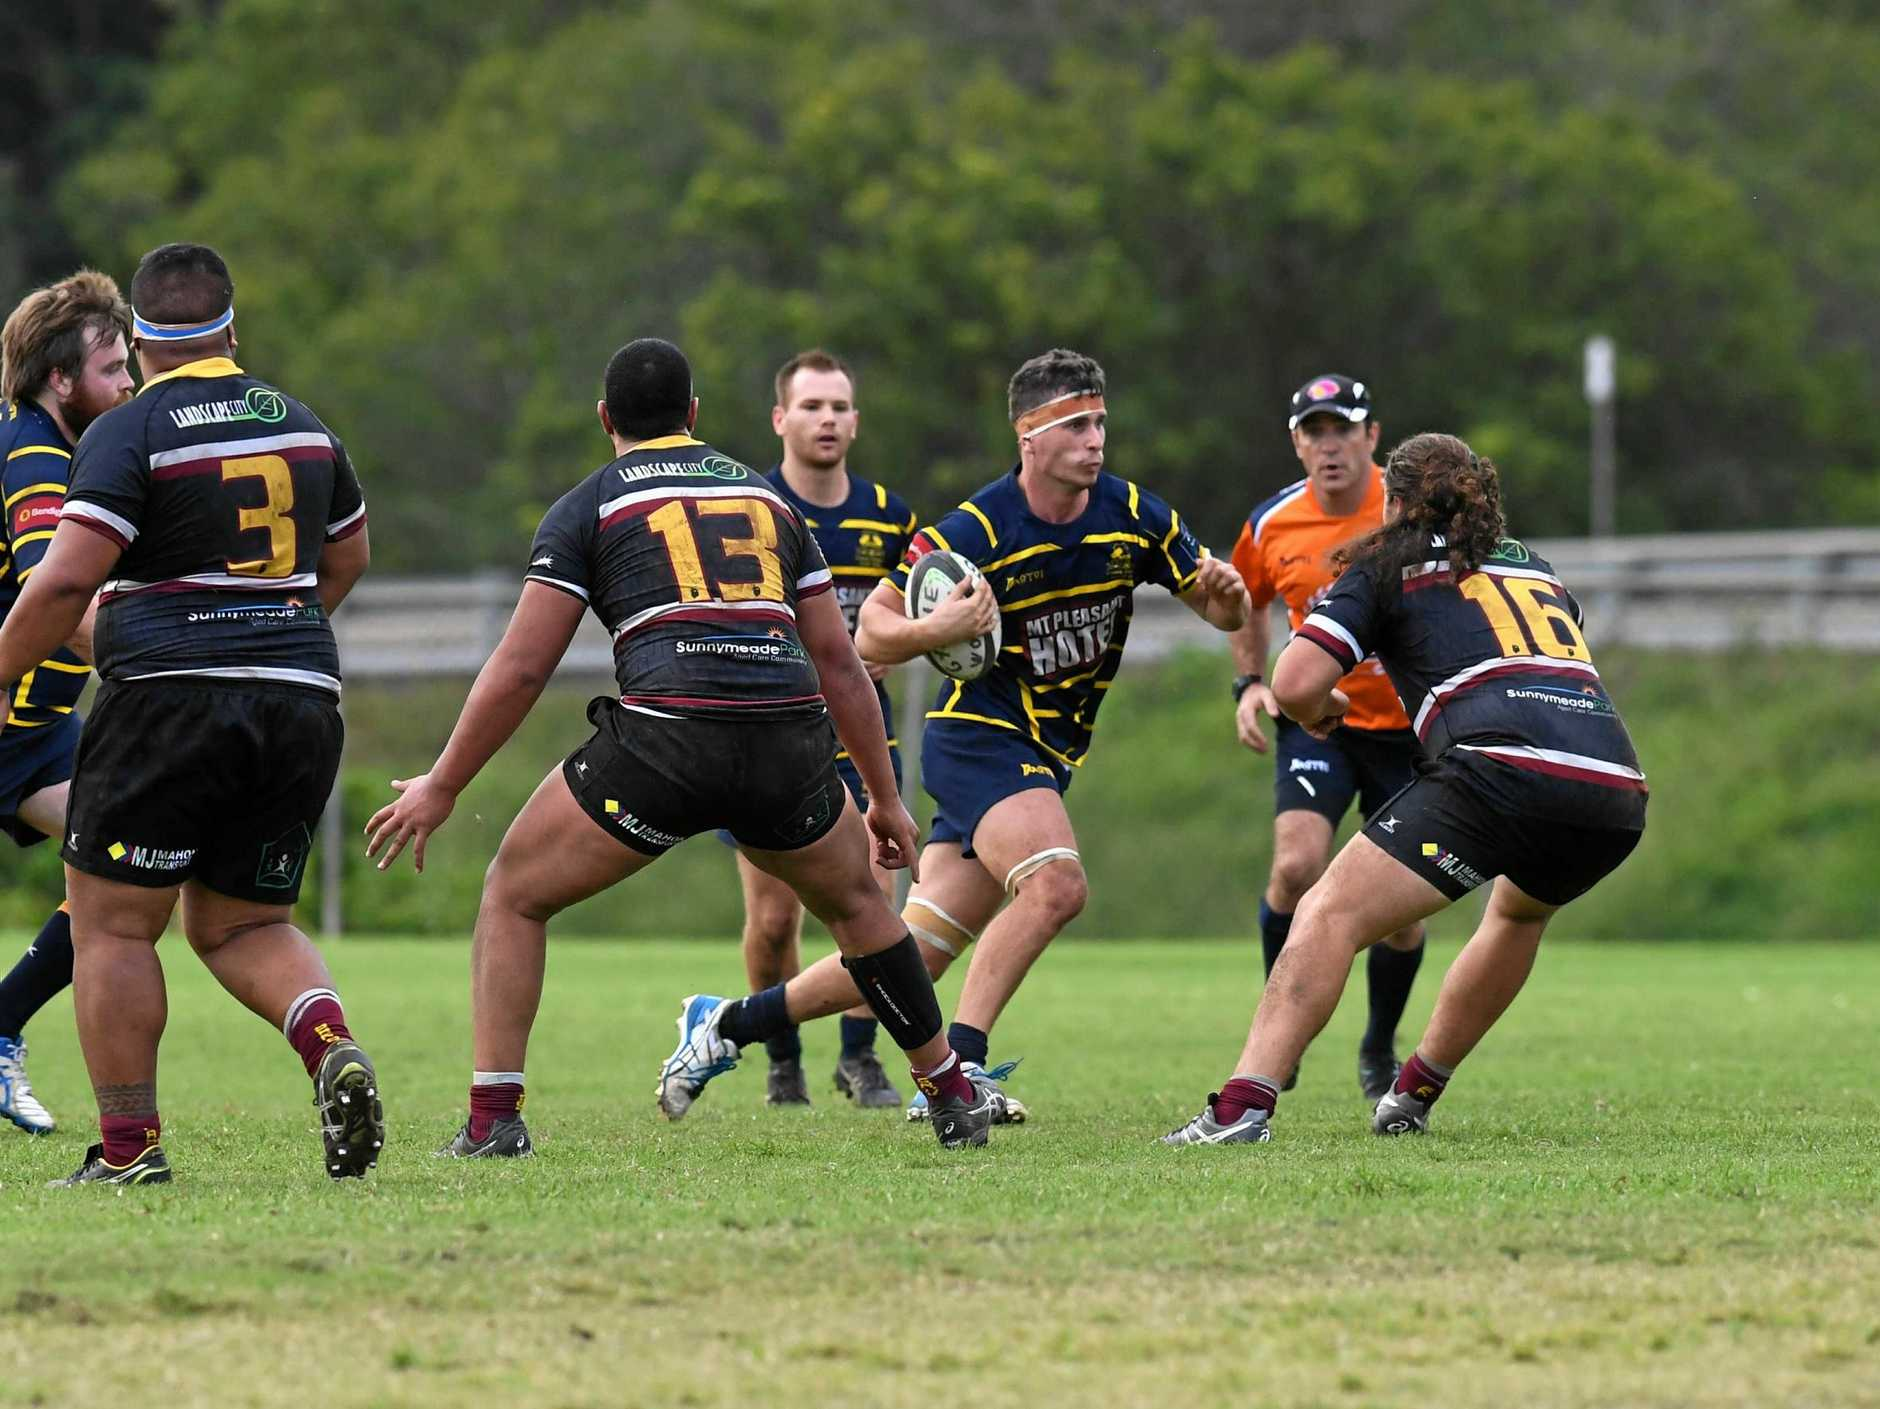 Gympie Hammers VS Caboolture - Hammers win 14-5-  #4 Mitch James